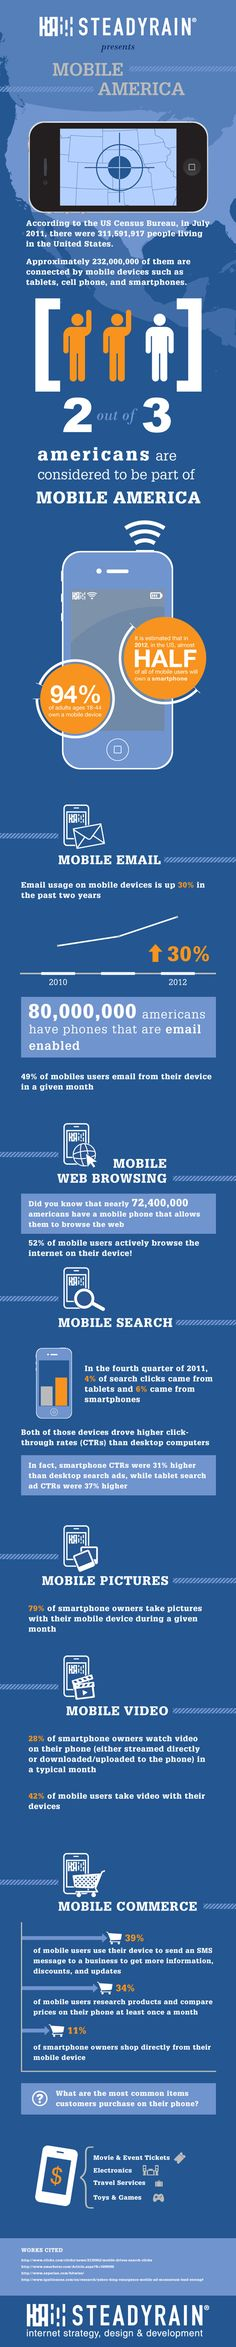 Mobile-In-America-infographic